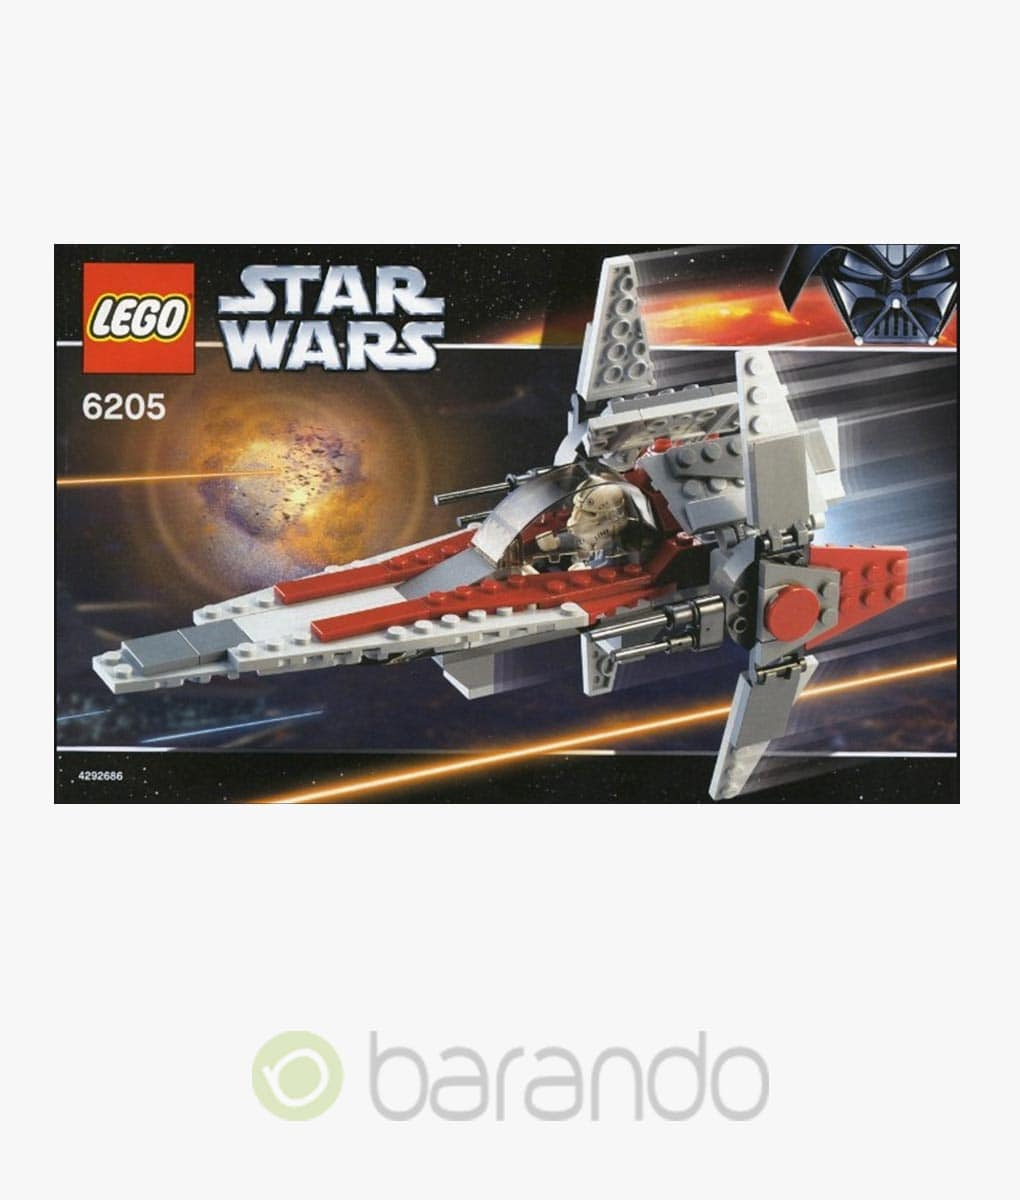 LEGO Star Wars 6205 V-Wing Fighter Set